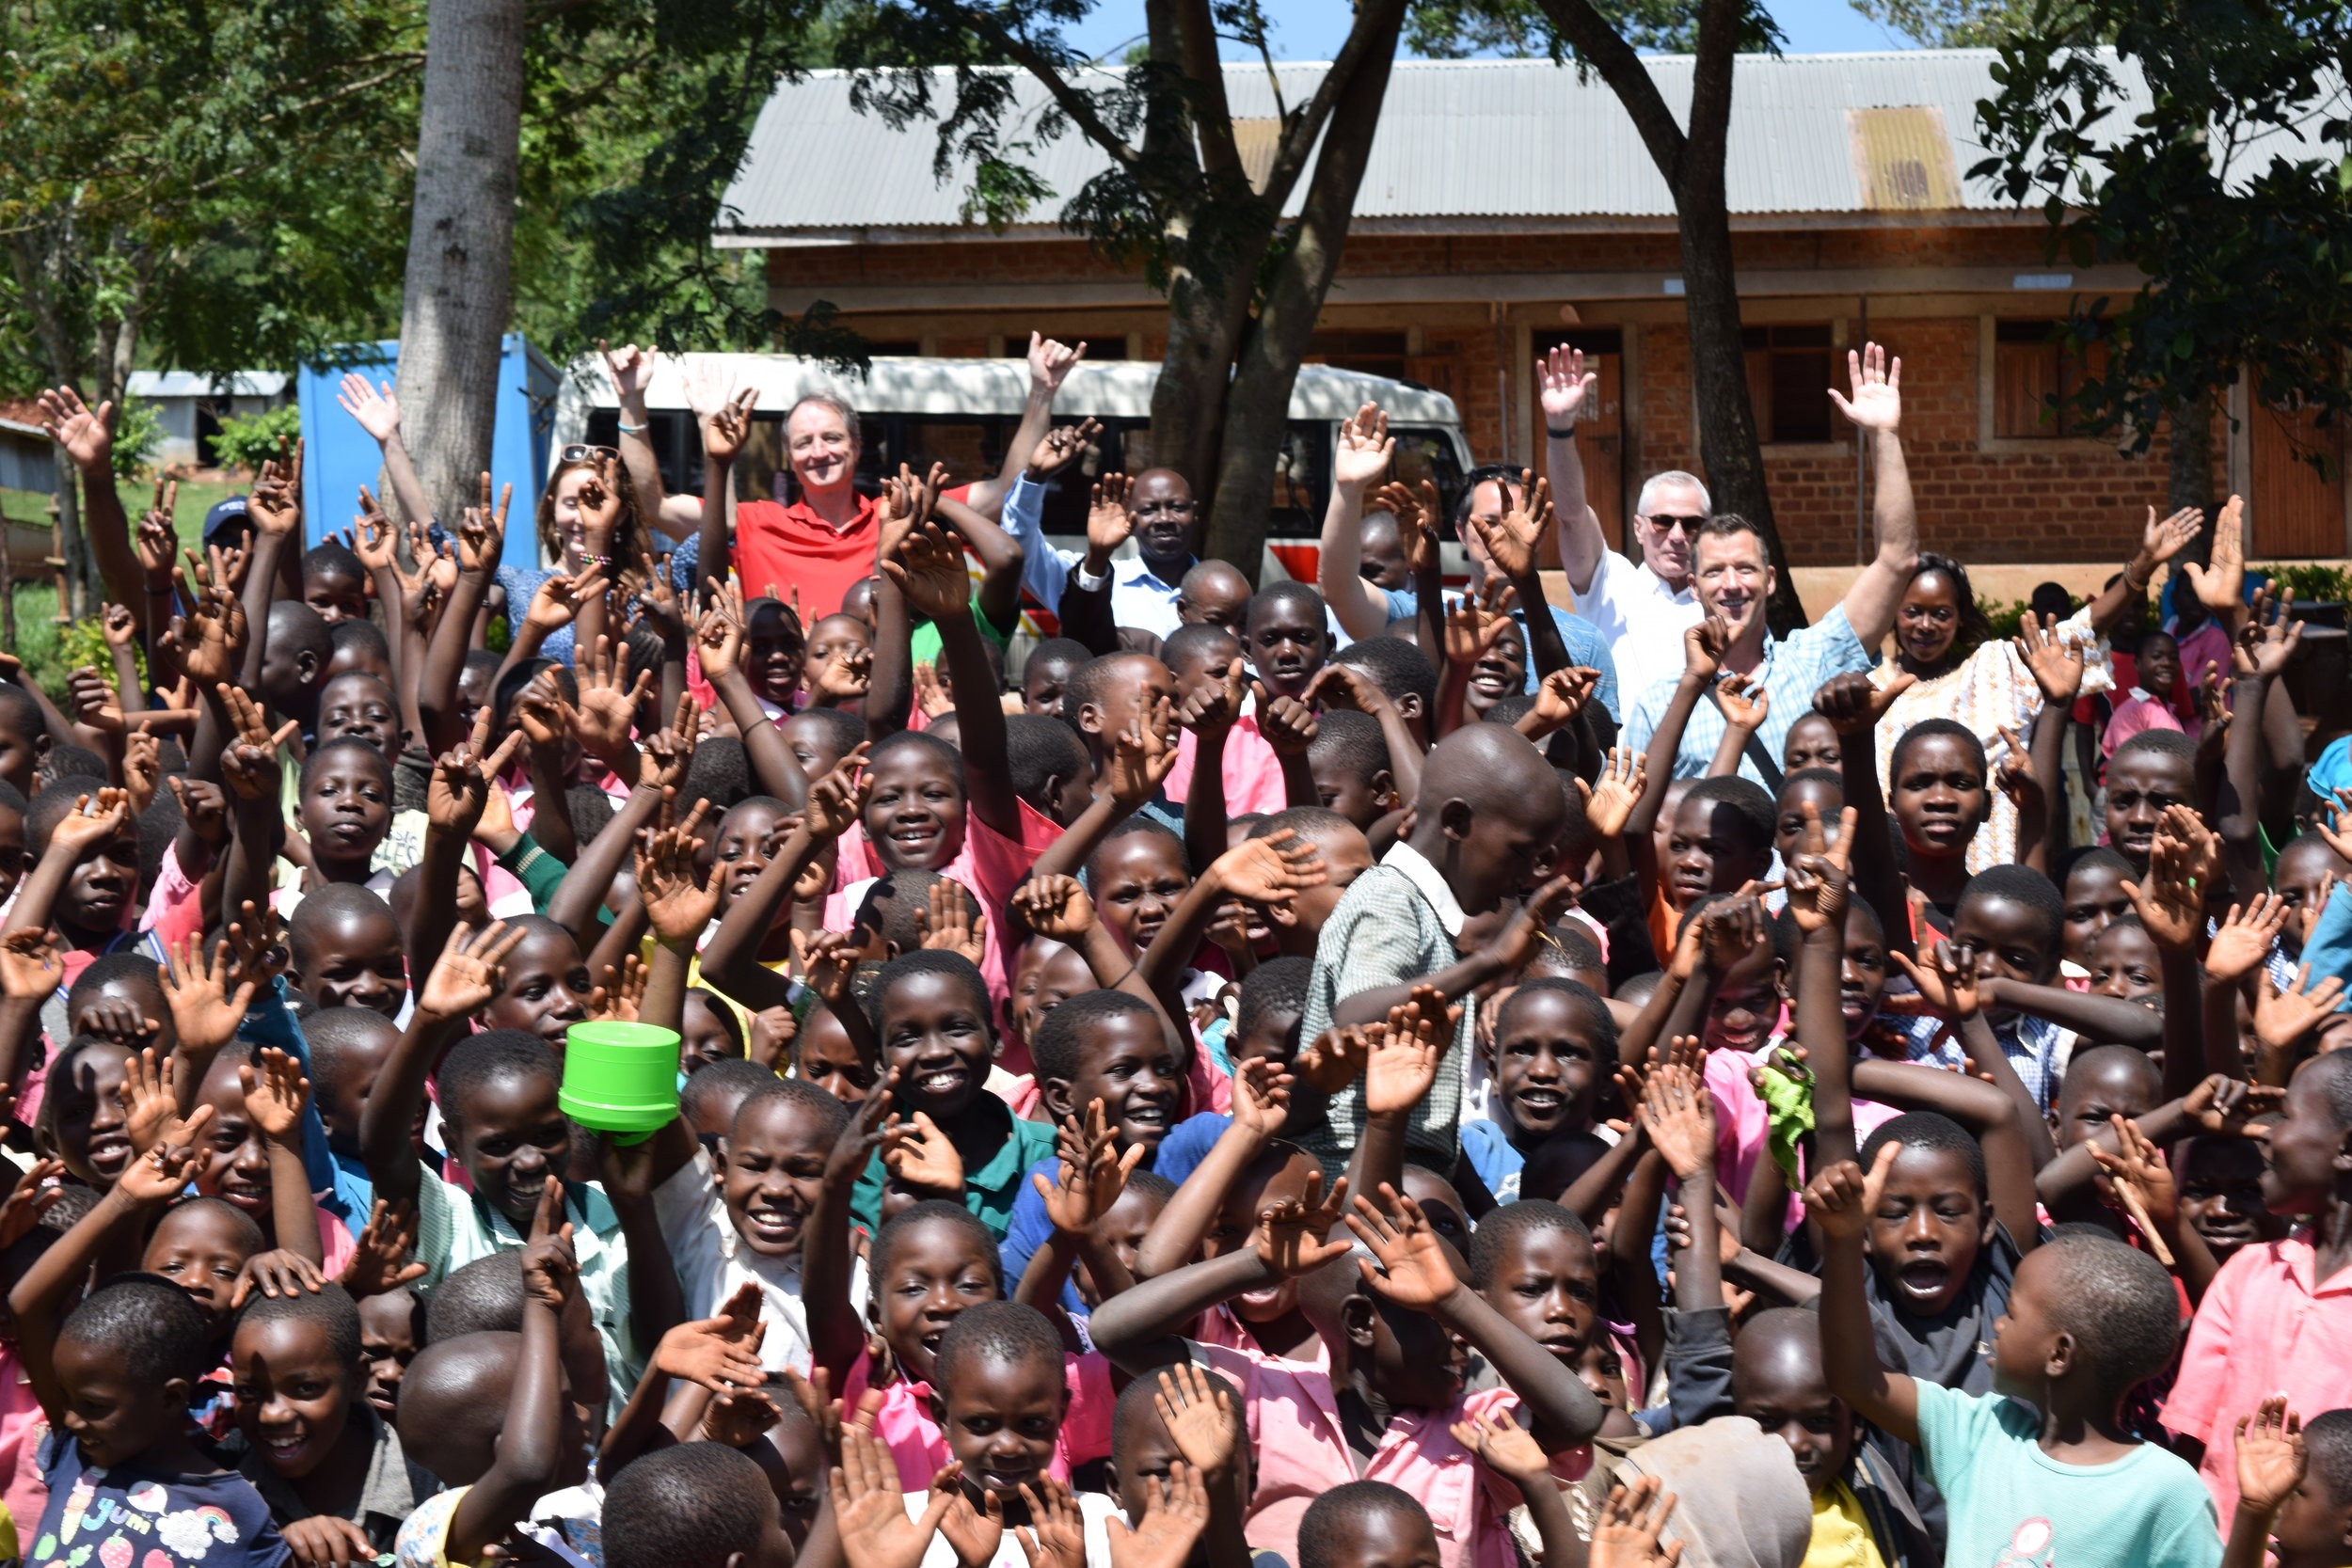 On International Women's Day, children and teachers from a school in Sentigi, Uganda greet participants on the immersion trip with Miller Center.